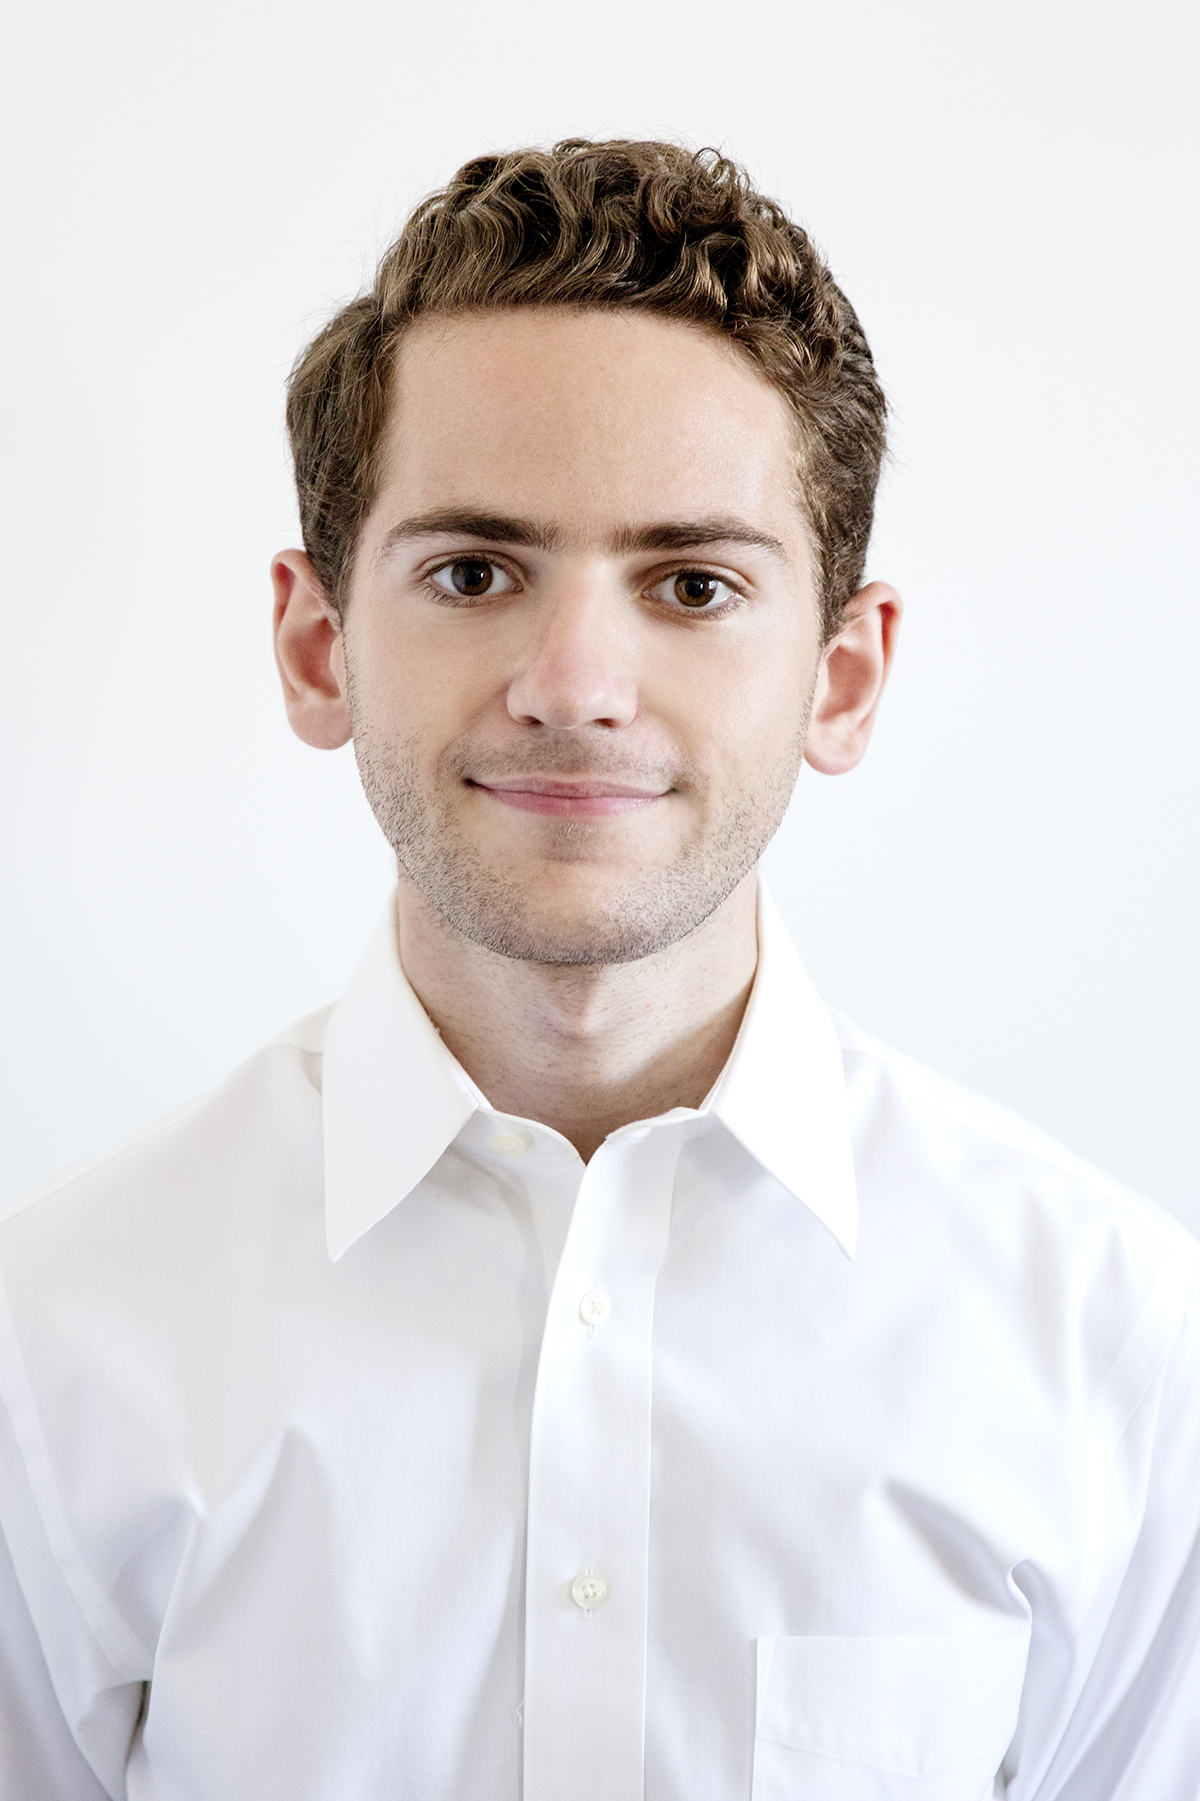 Alexander Charlap Hyman Director  Alexander Charlap Hyman studied Architectural History and Business Management at Columbia University. He worked at real estate firms Tishman Construction and Silverstein Properties before partnering with Adam and Andre.